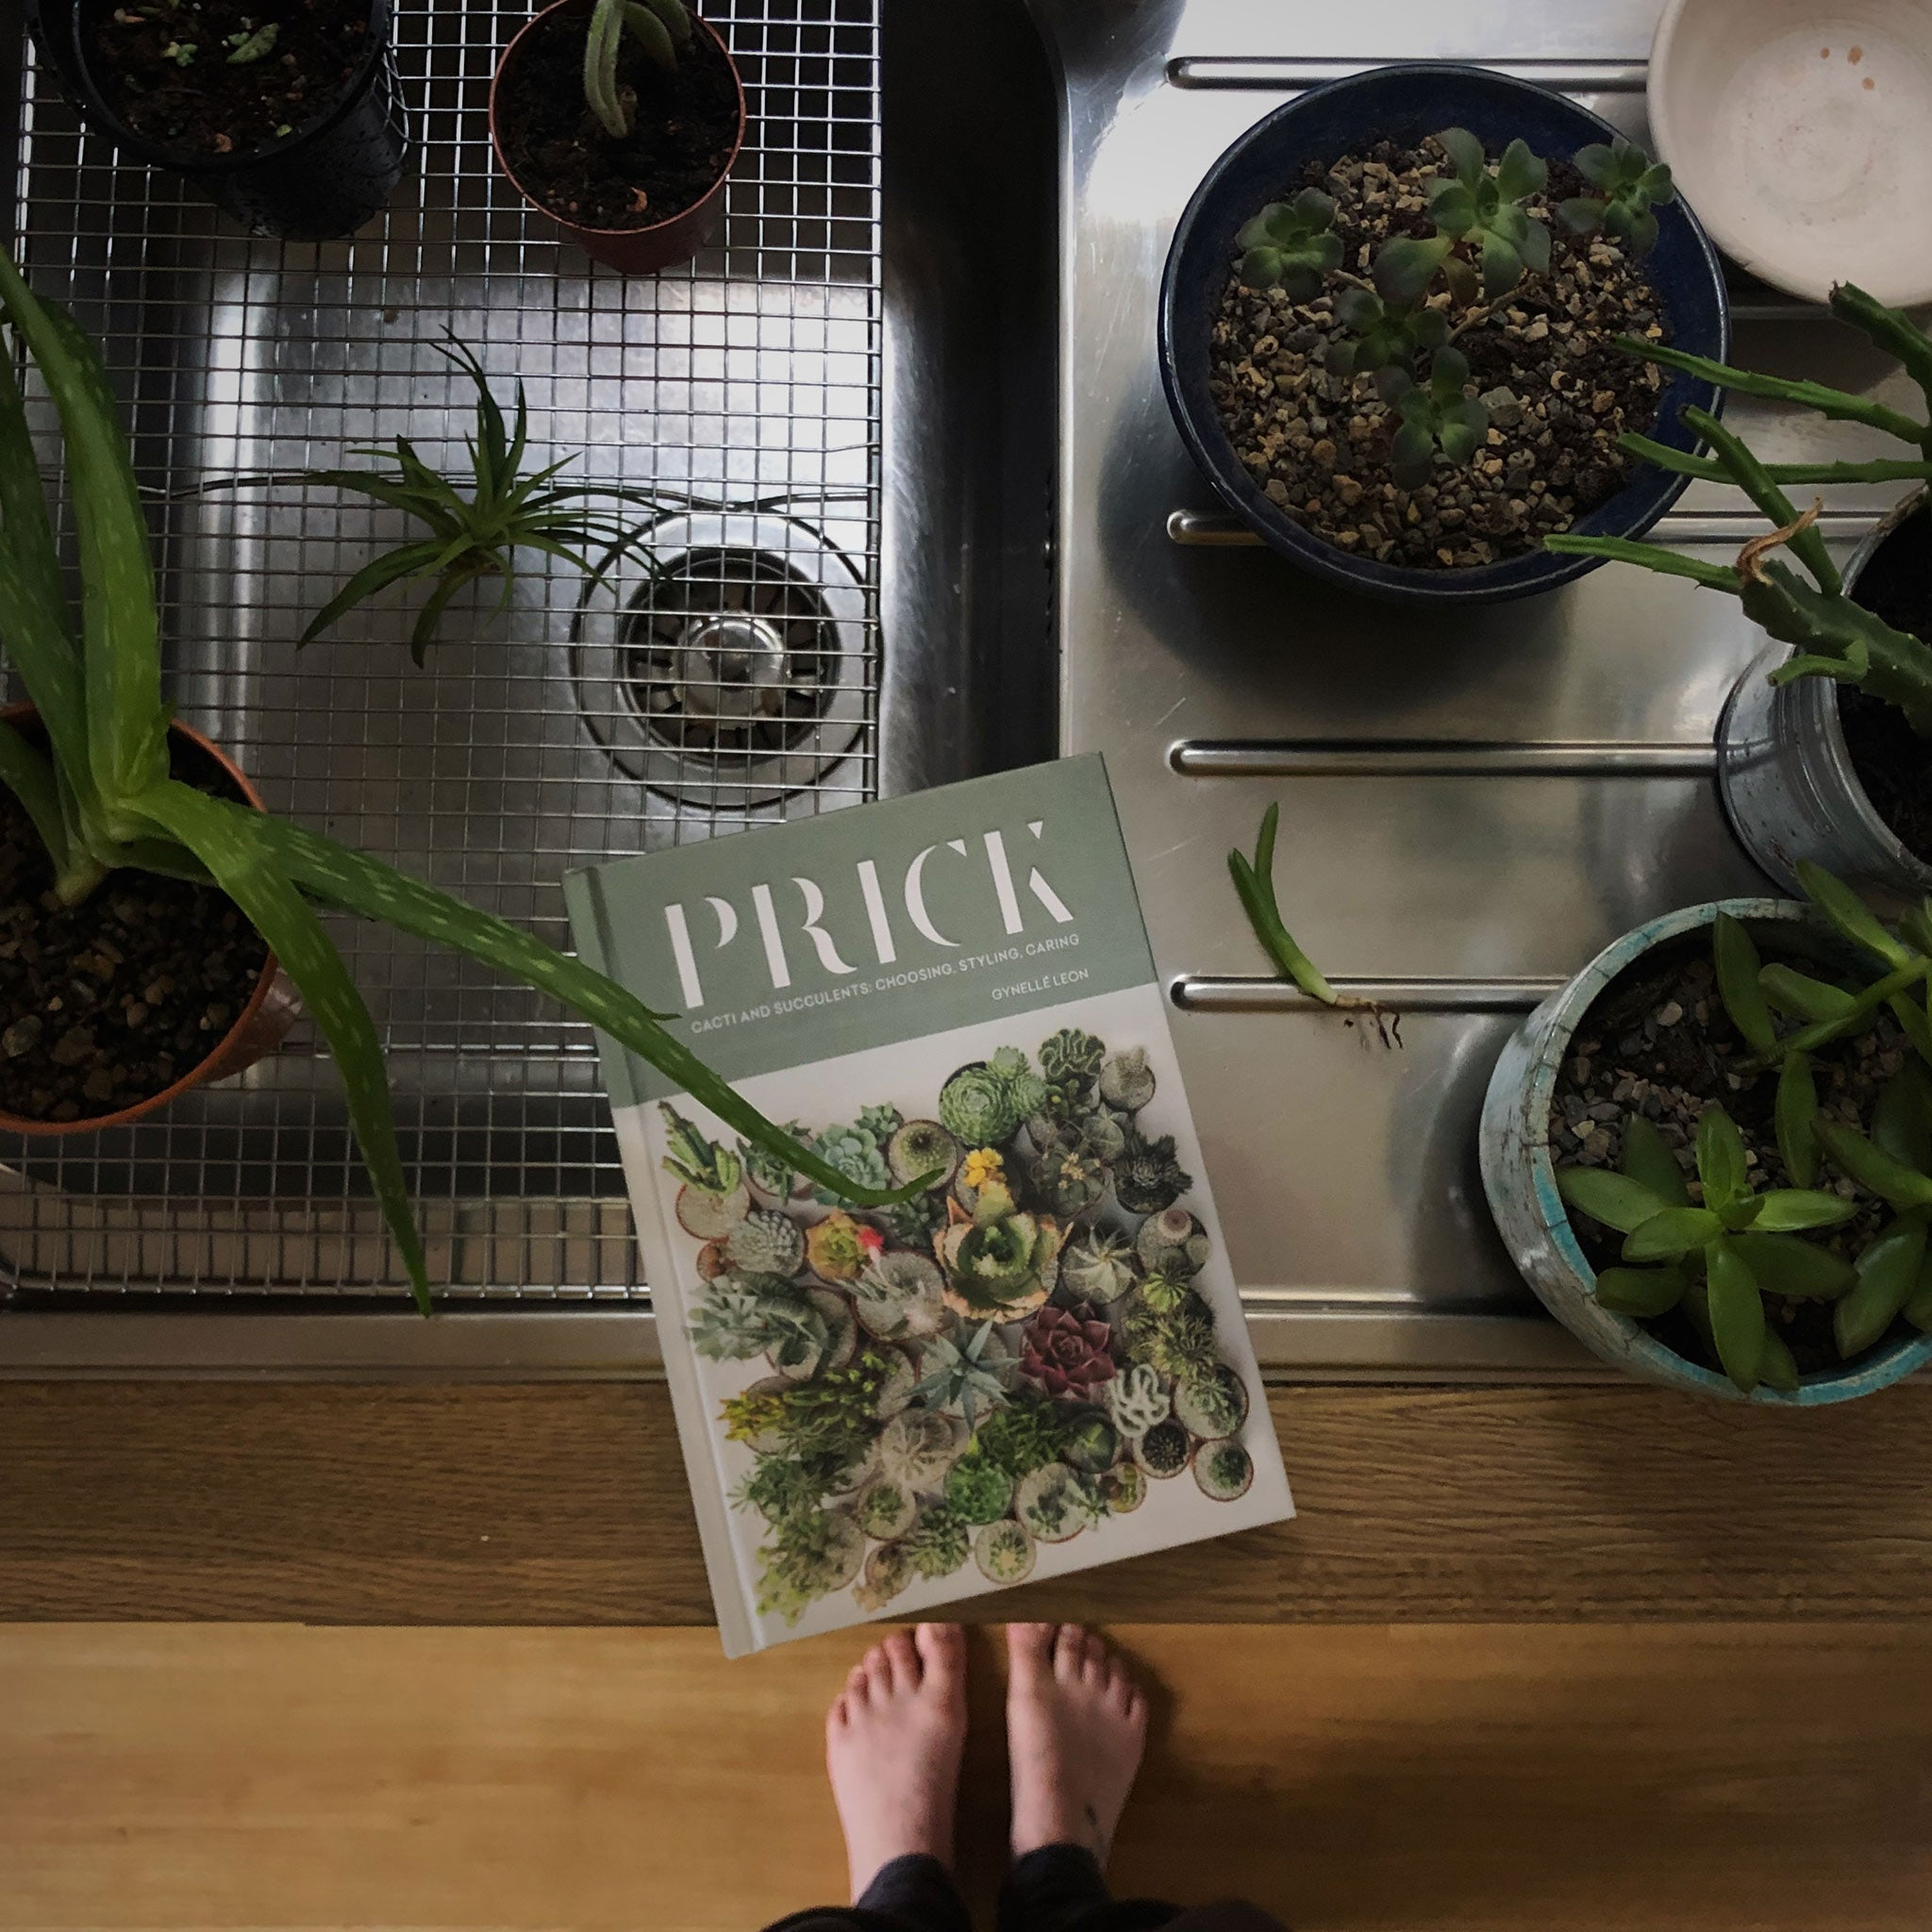 Image of a book balanced on the edge of a metal sink. Surrounded by plants. The book is called Prick.